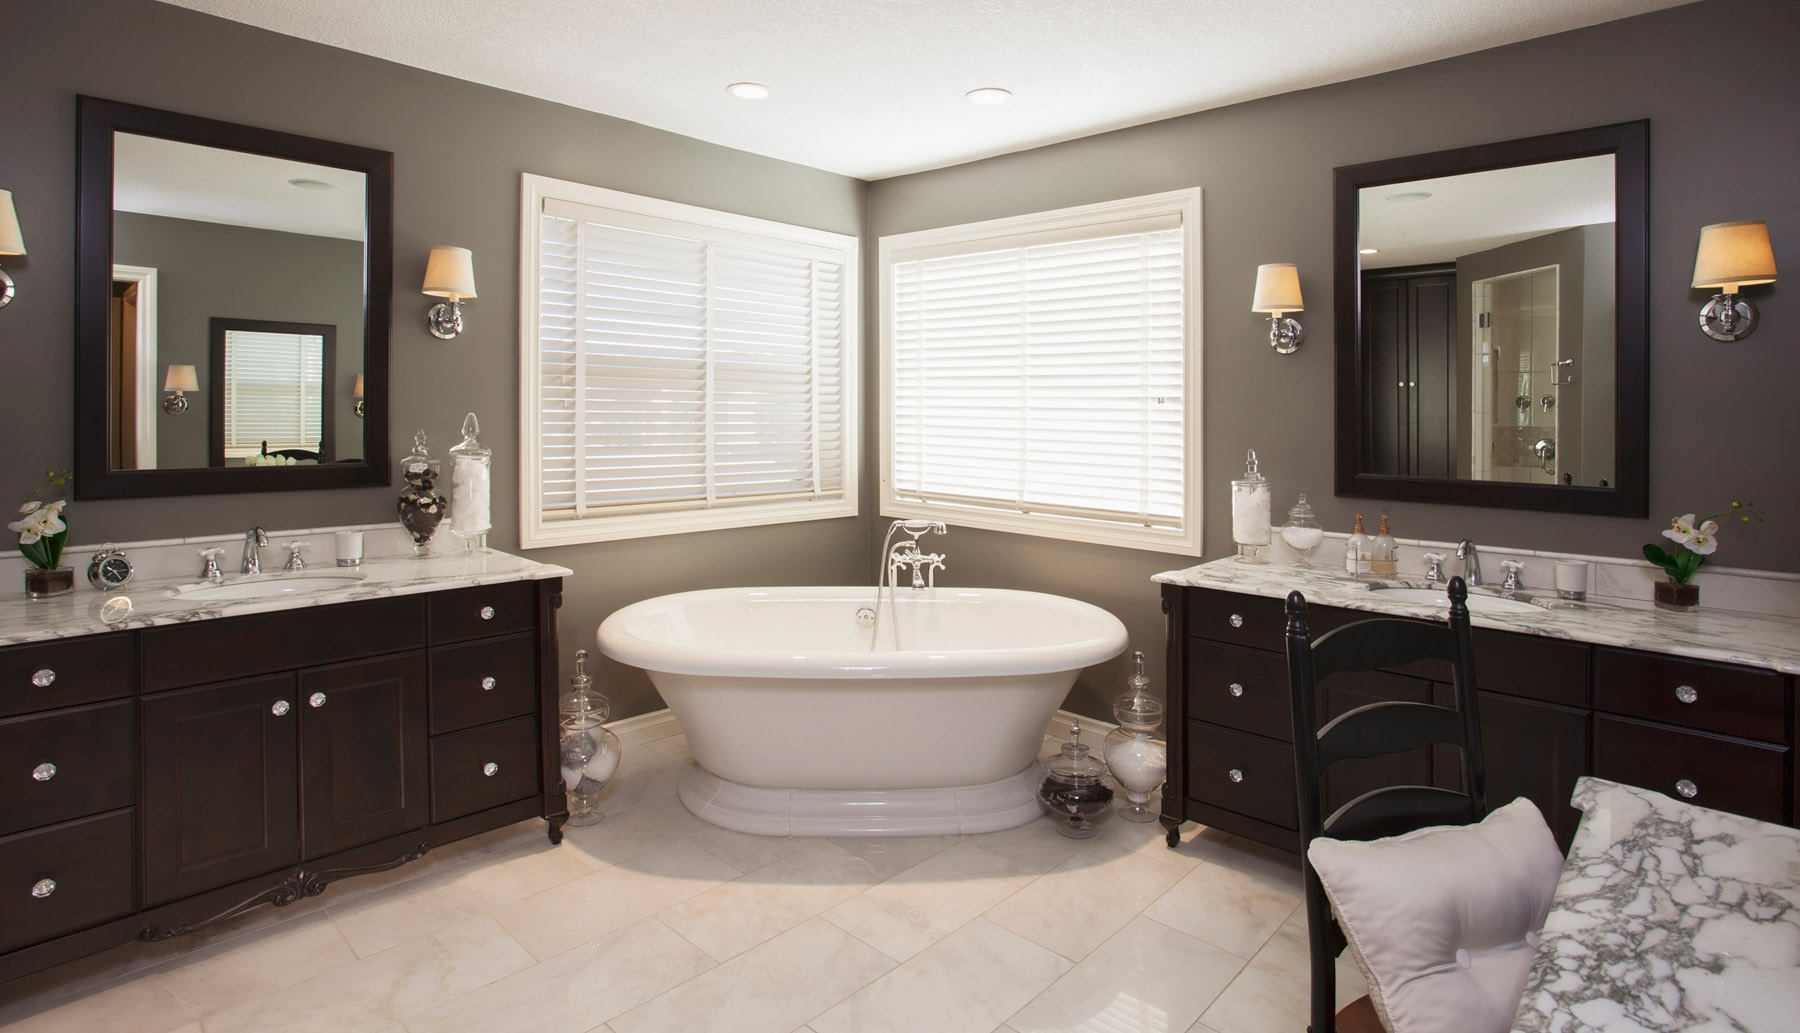 Bathroom renovations with a scent of citrus for Bathroom design and renovations